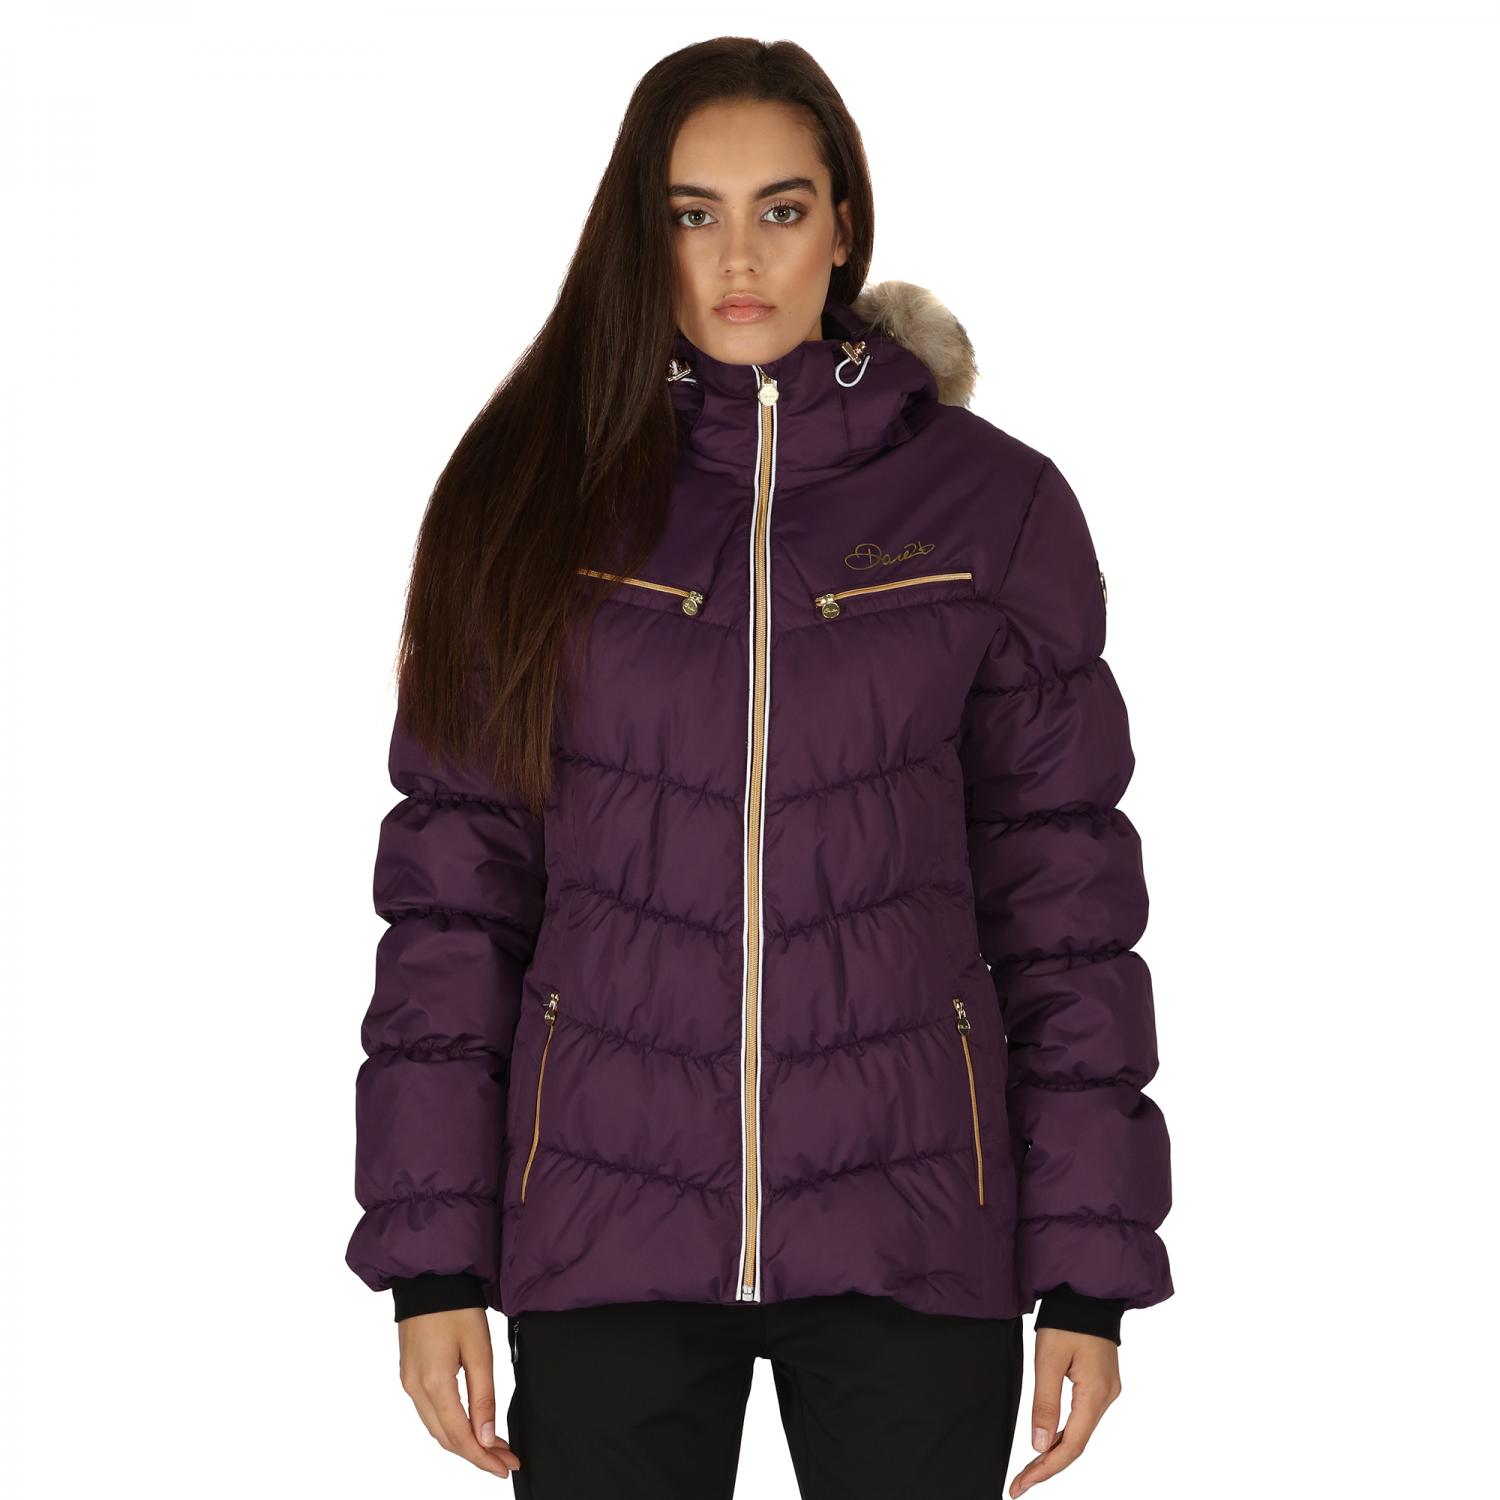 Refined II Ski Jacket Shadow Purple 298375422